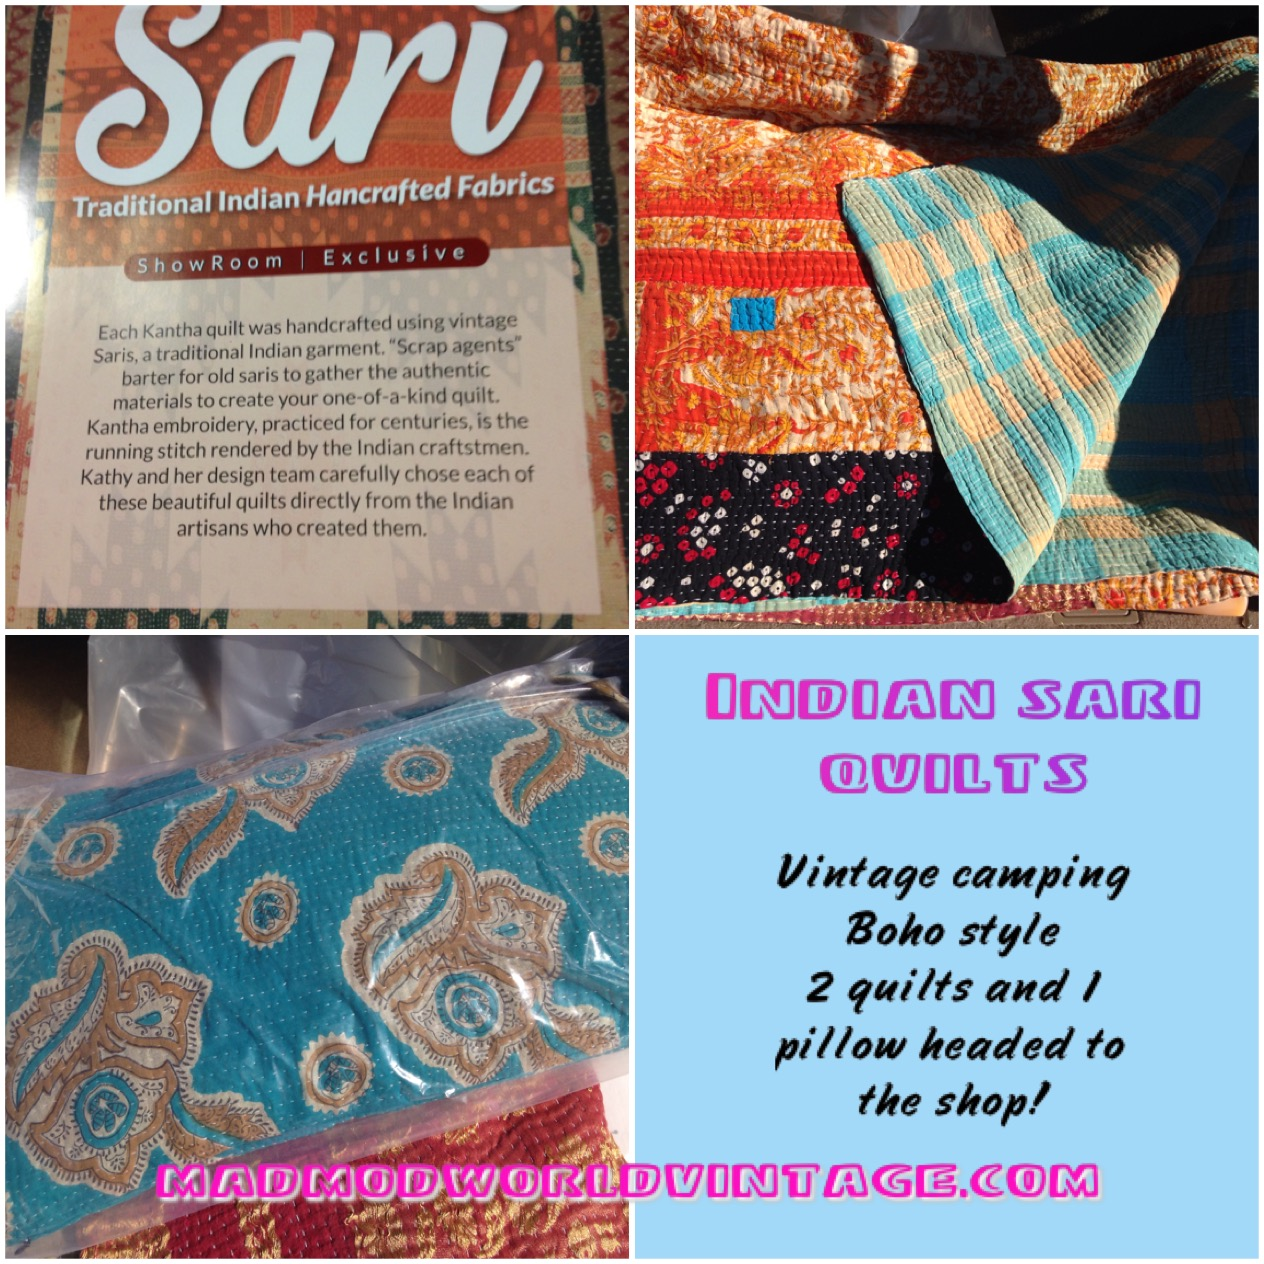 Indian Sari blankets and pillows. Completely gorgeous!